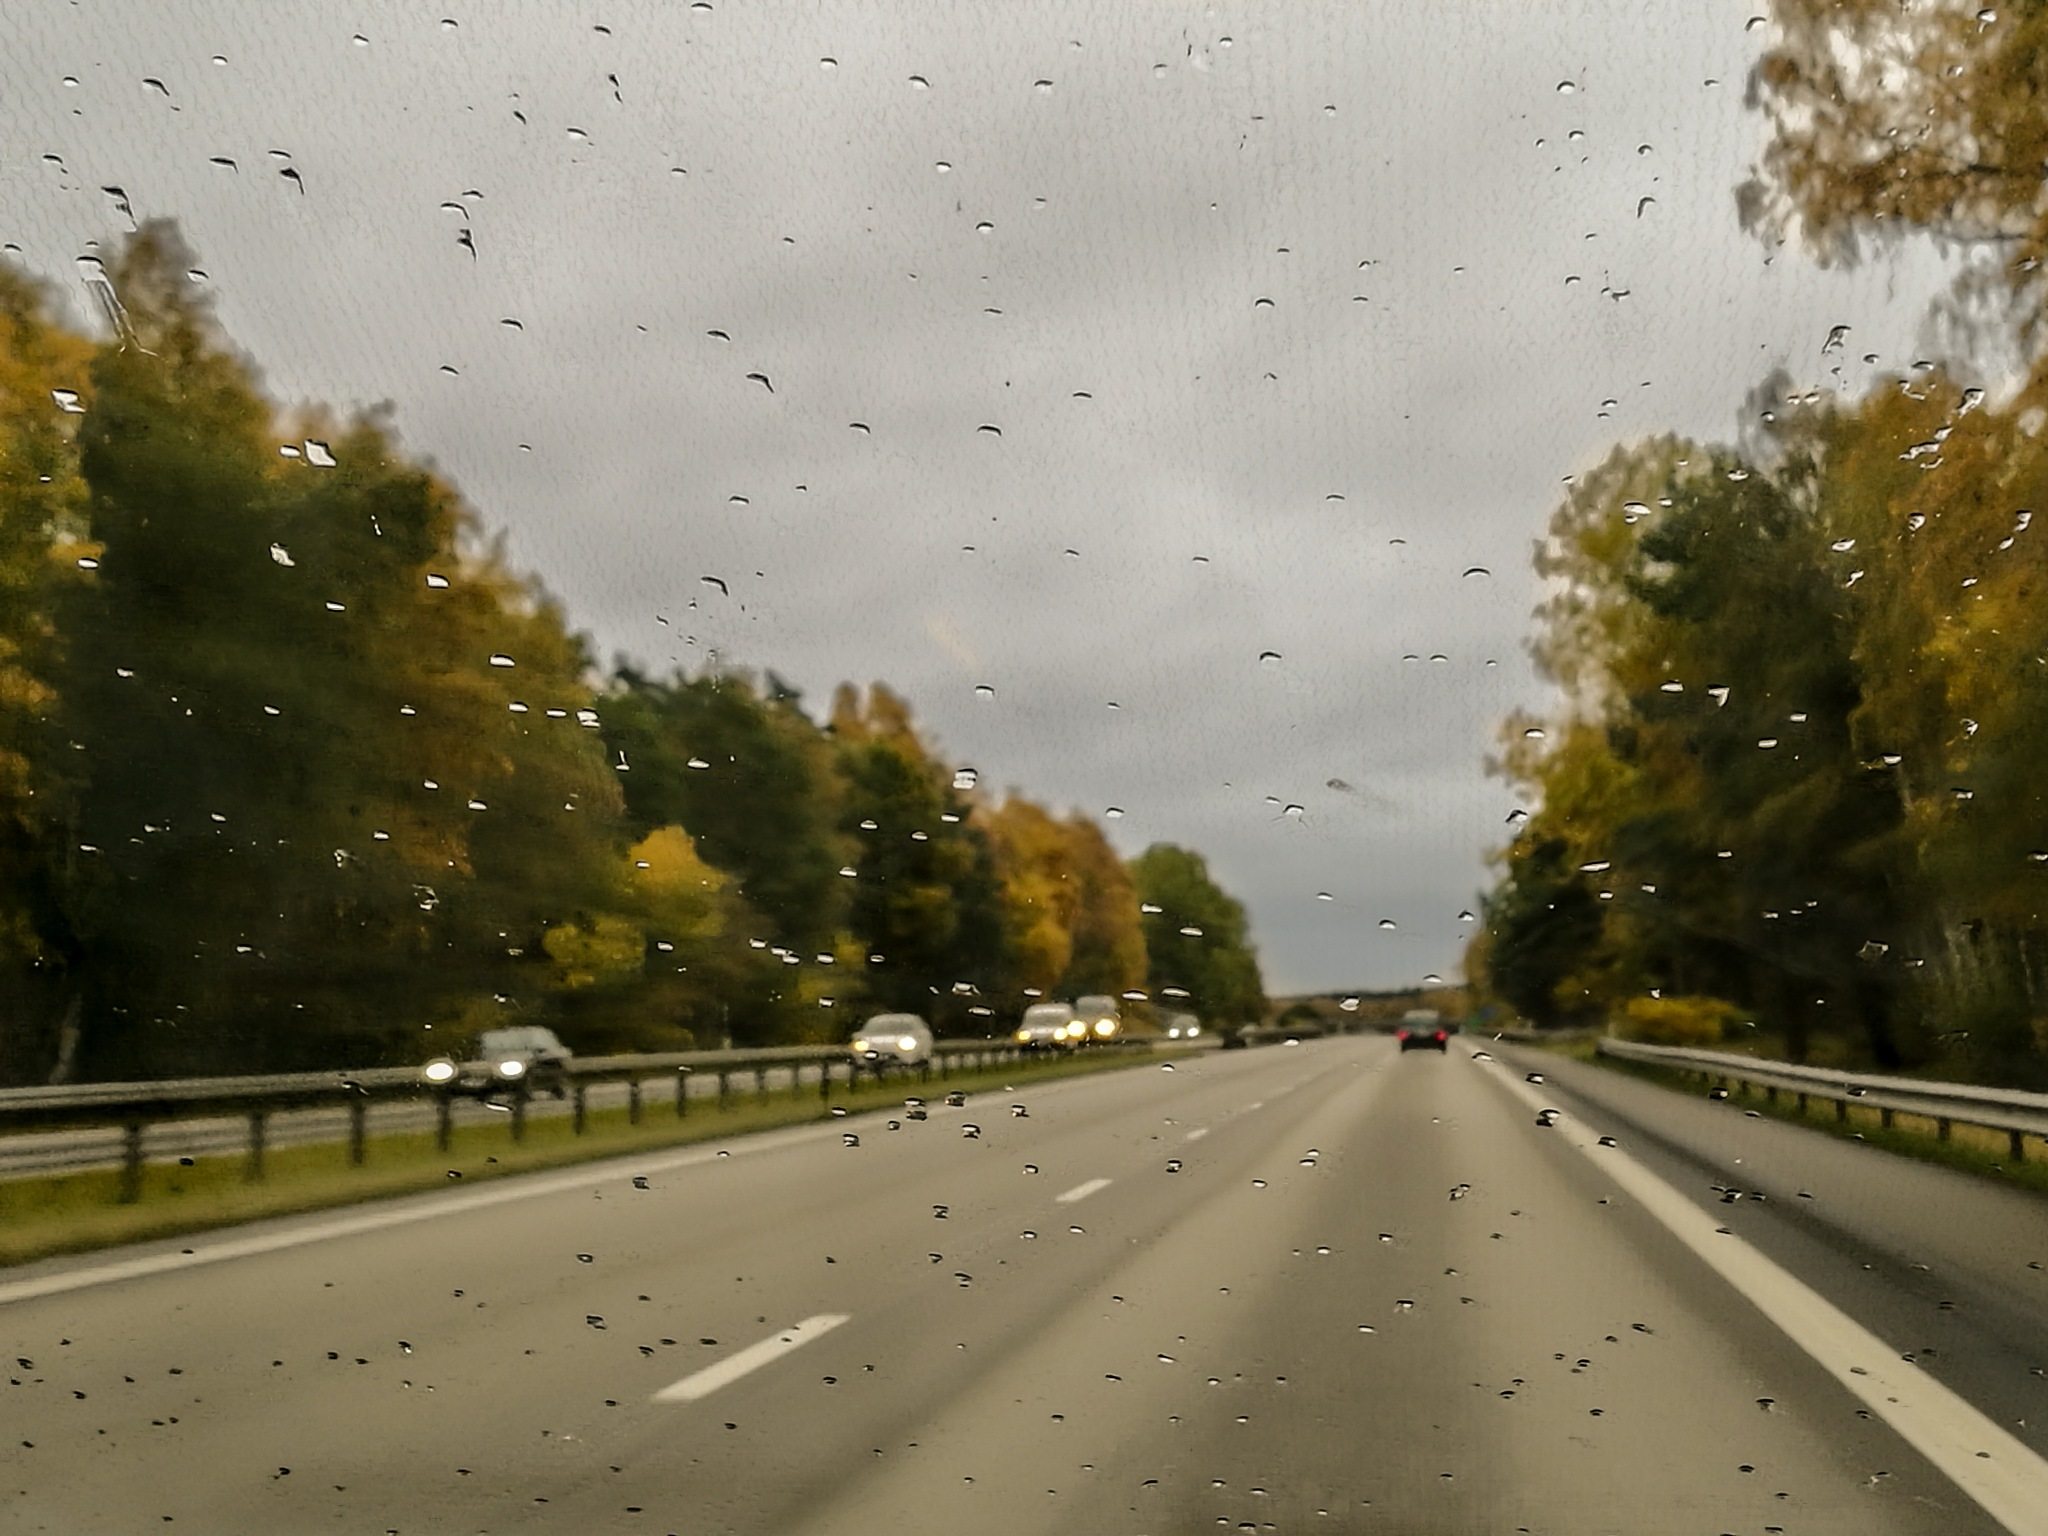 Rainy day in the car by AnnelieConca